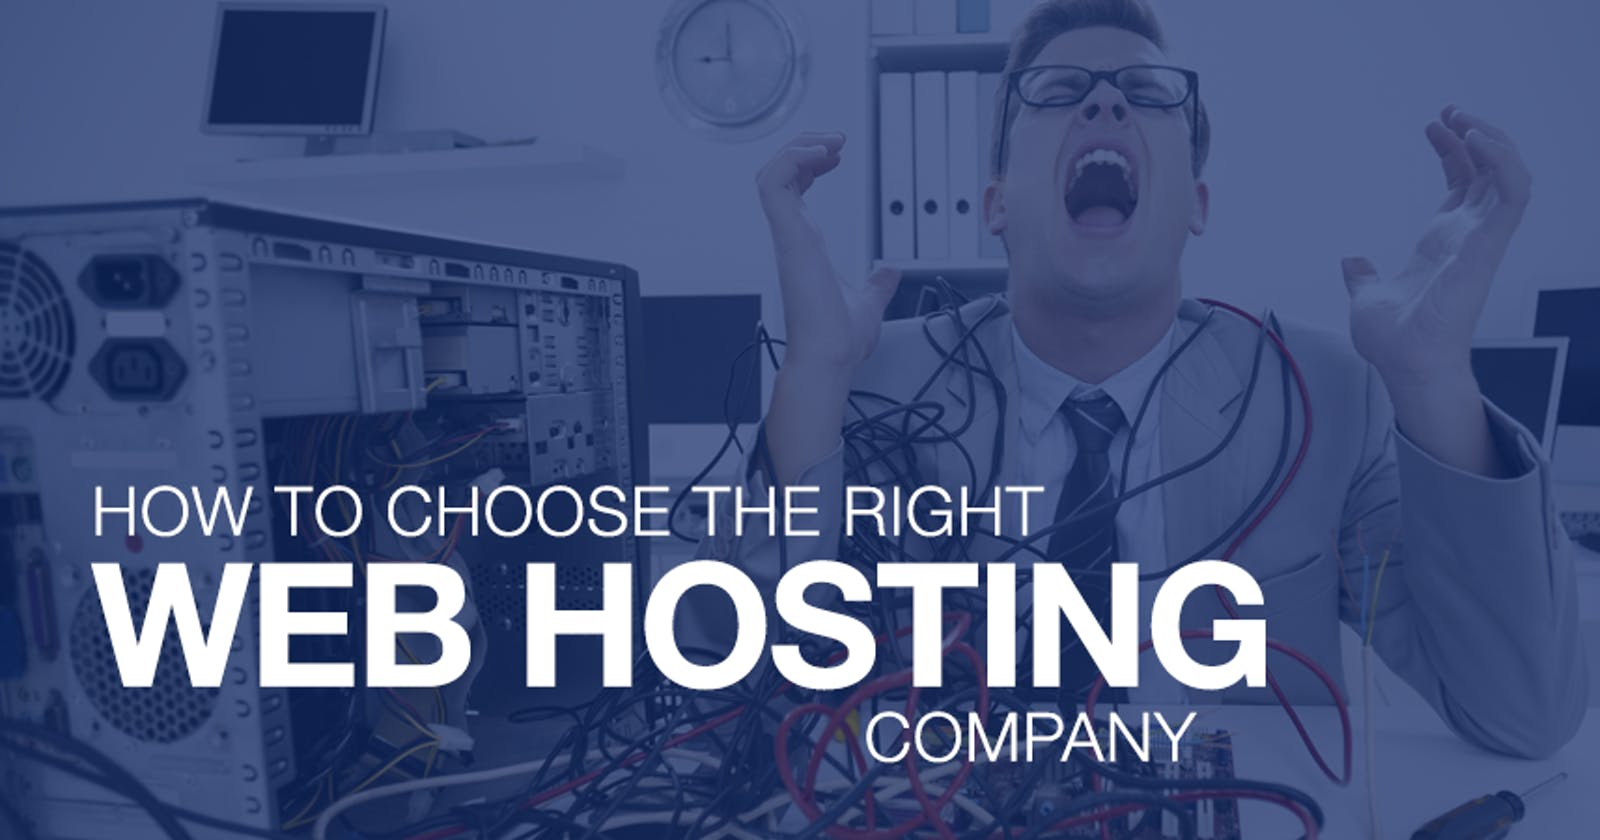 How to find the right web hosting company